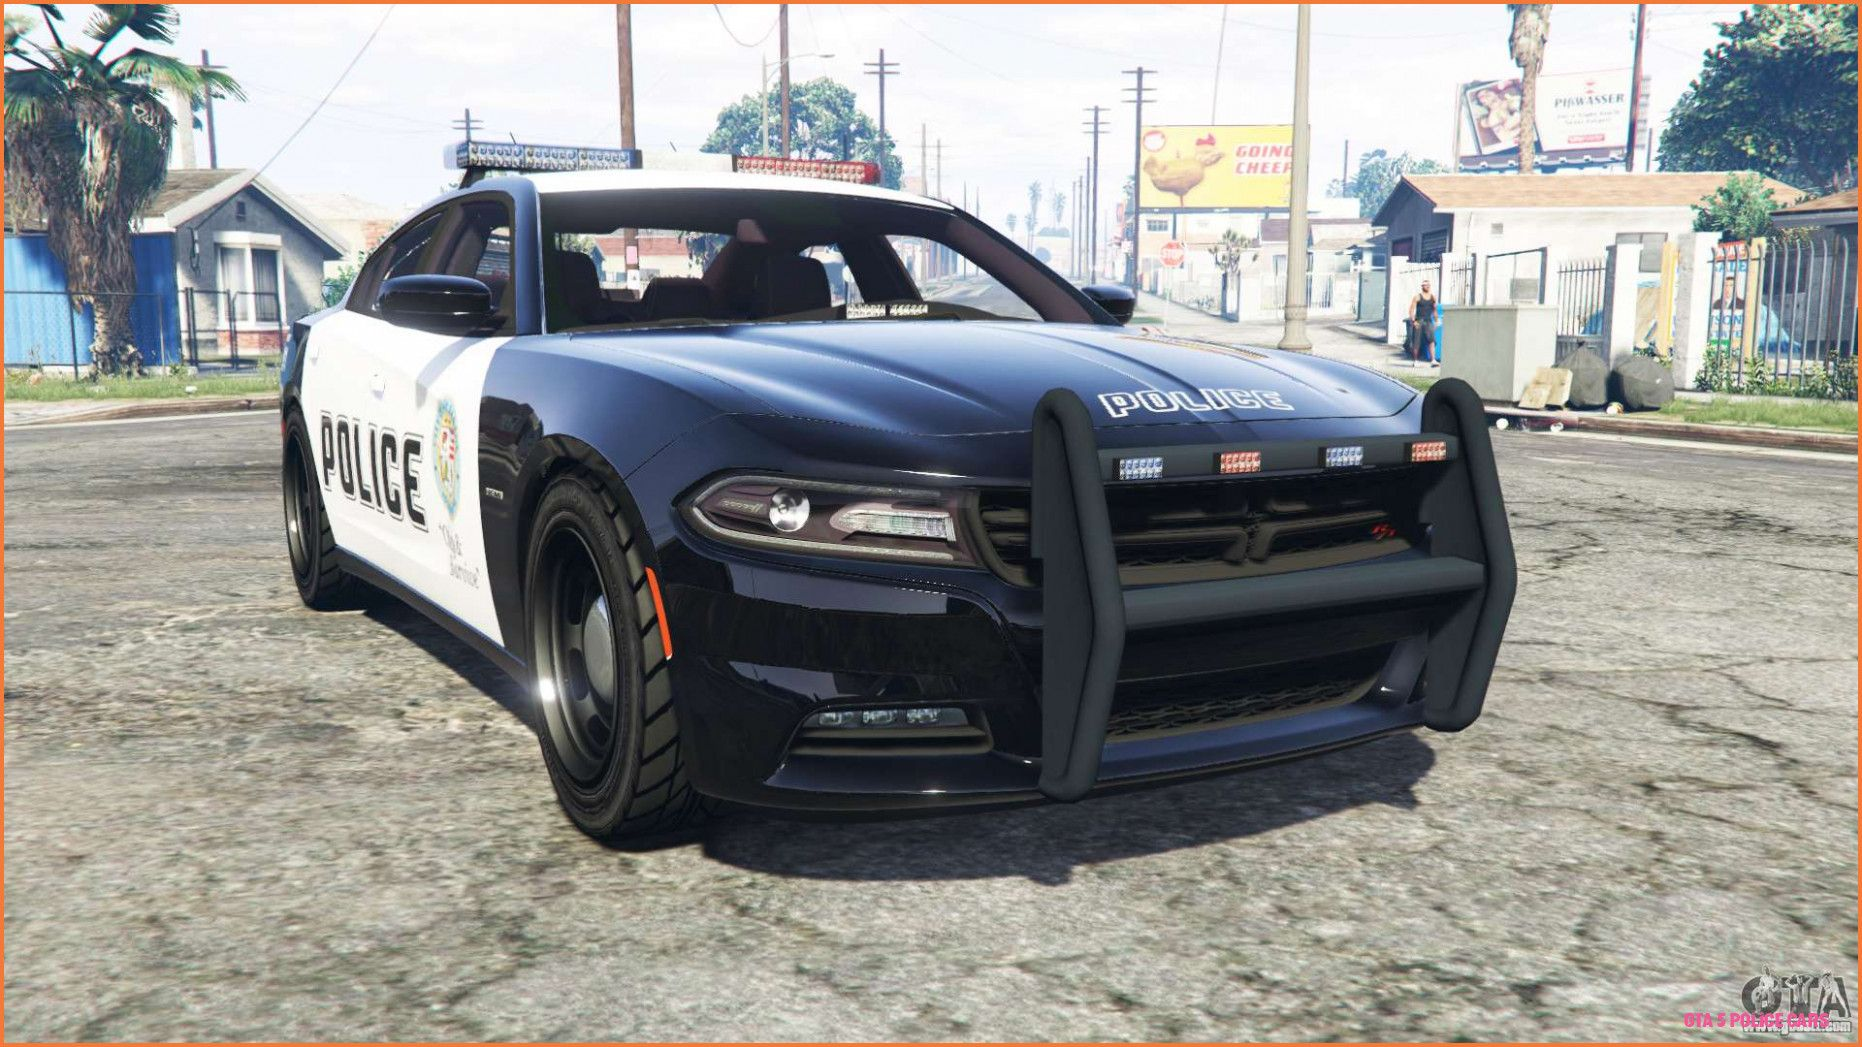 Eliminate Your Fears And Doubts About Gta 11 Police Cars Gta 11 Police Cars Https Www Carsneat Com Eliminate Your Fears And Police Cars Police Truck Police